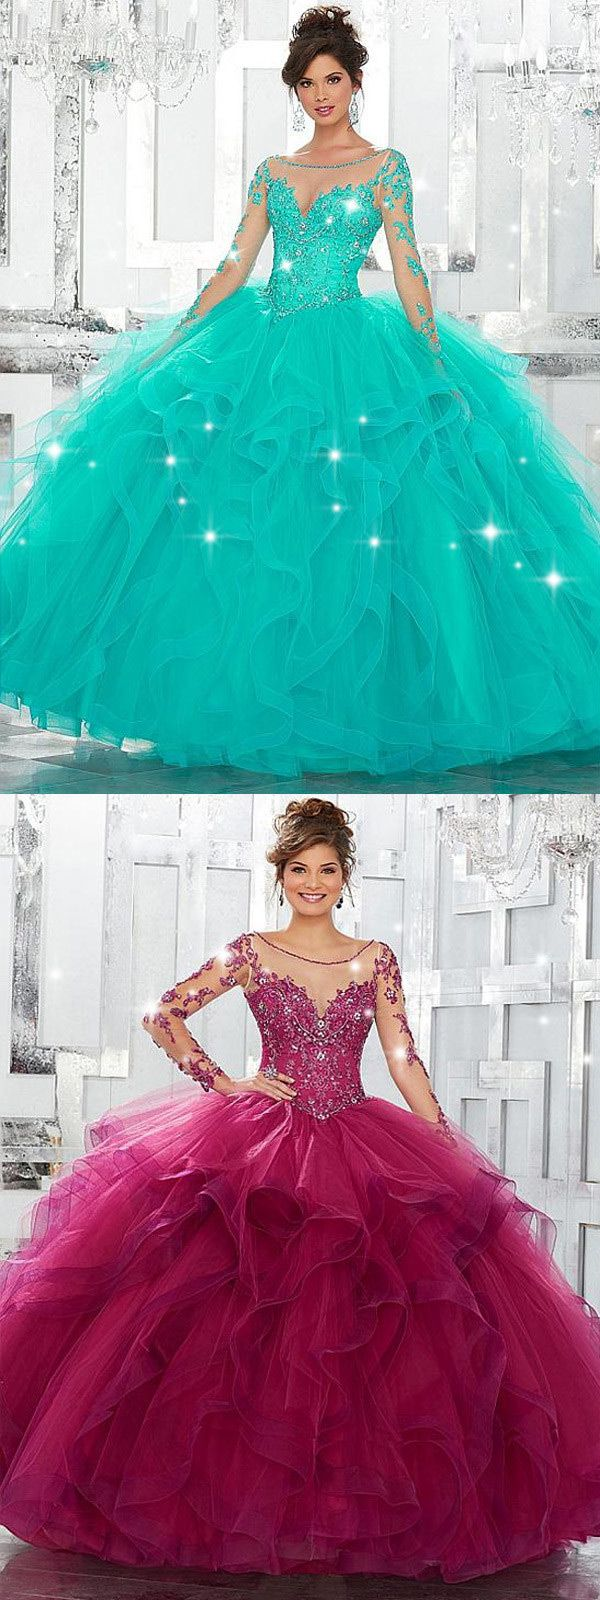 Glamorous tulle bateau neckline ball gown quinceanera dresses with